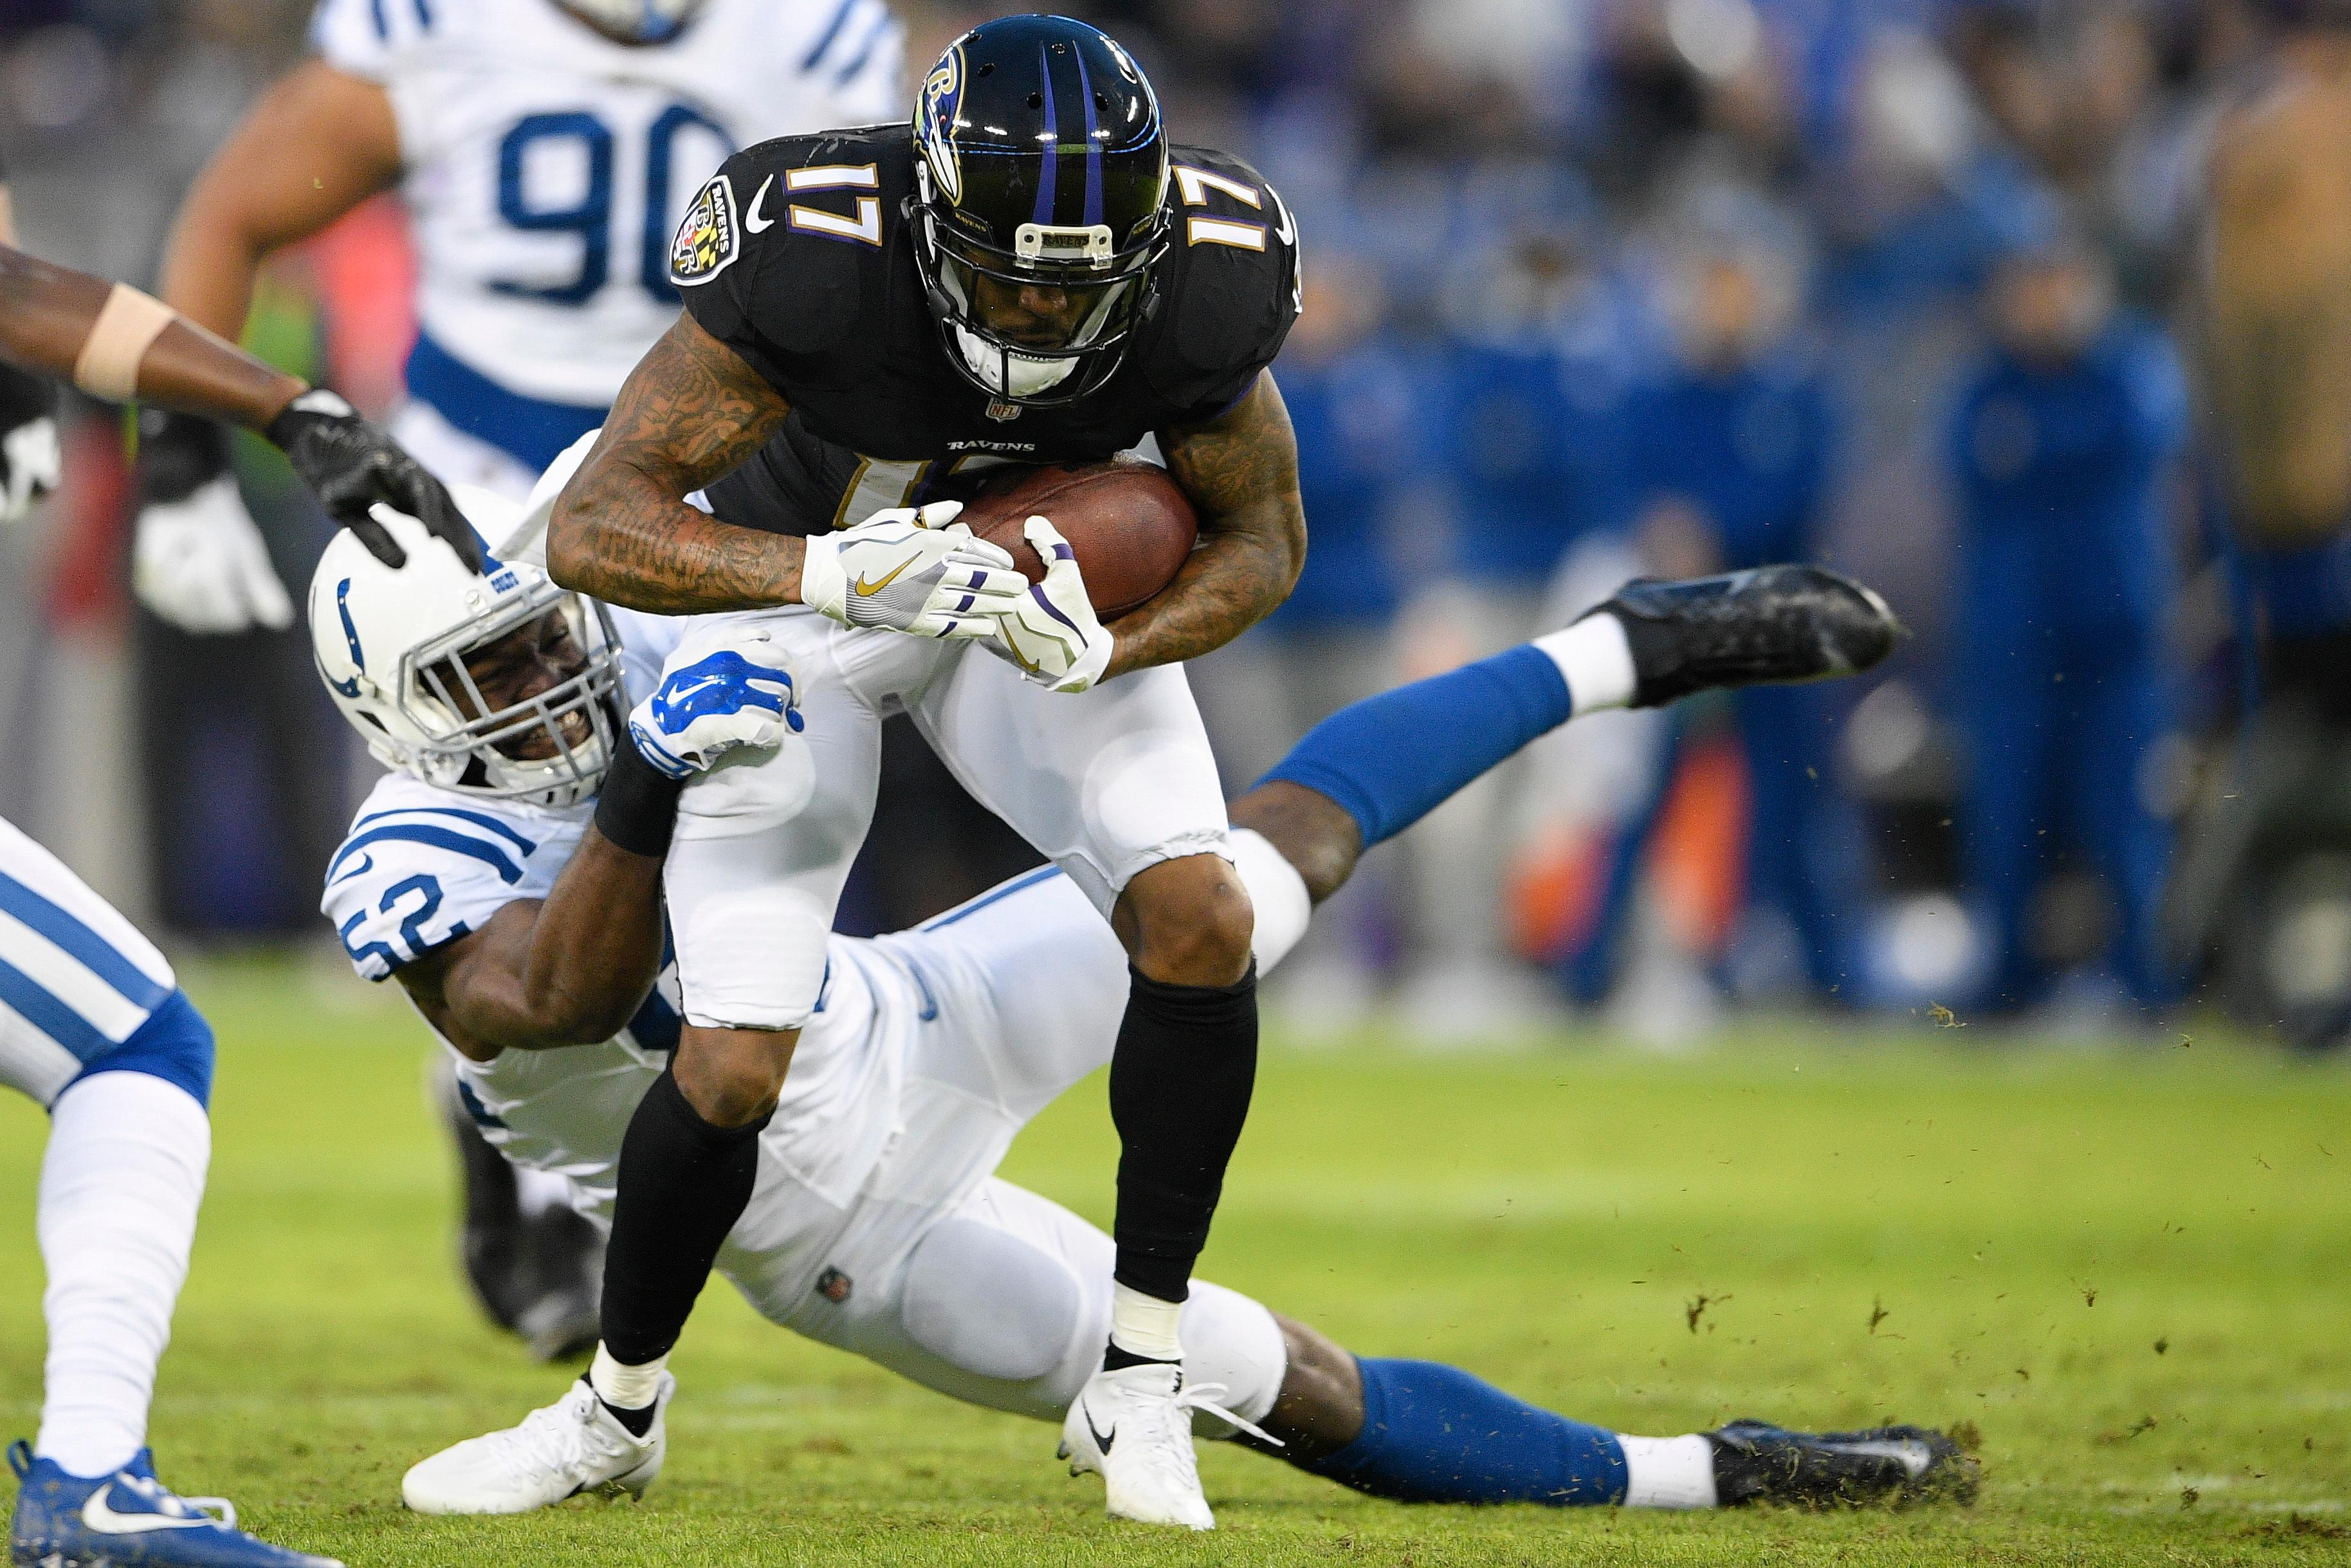 Baltimore Ravens wide receiver Mike Wallace (17) is stopped by Indianapolis Colts outside linebacker Barkevious Mingo (52) during the first half of an NFL football game in Baltimore, Saturday, Dec 23, 2017. (AP Photo/Nick Wass)